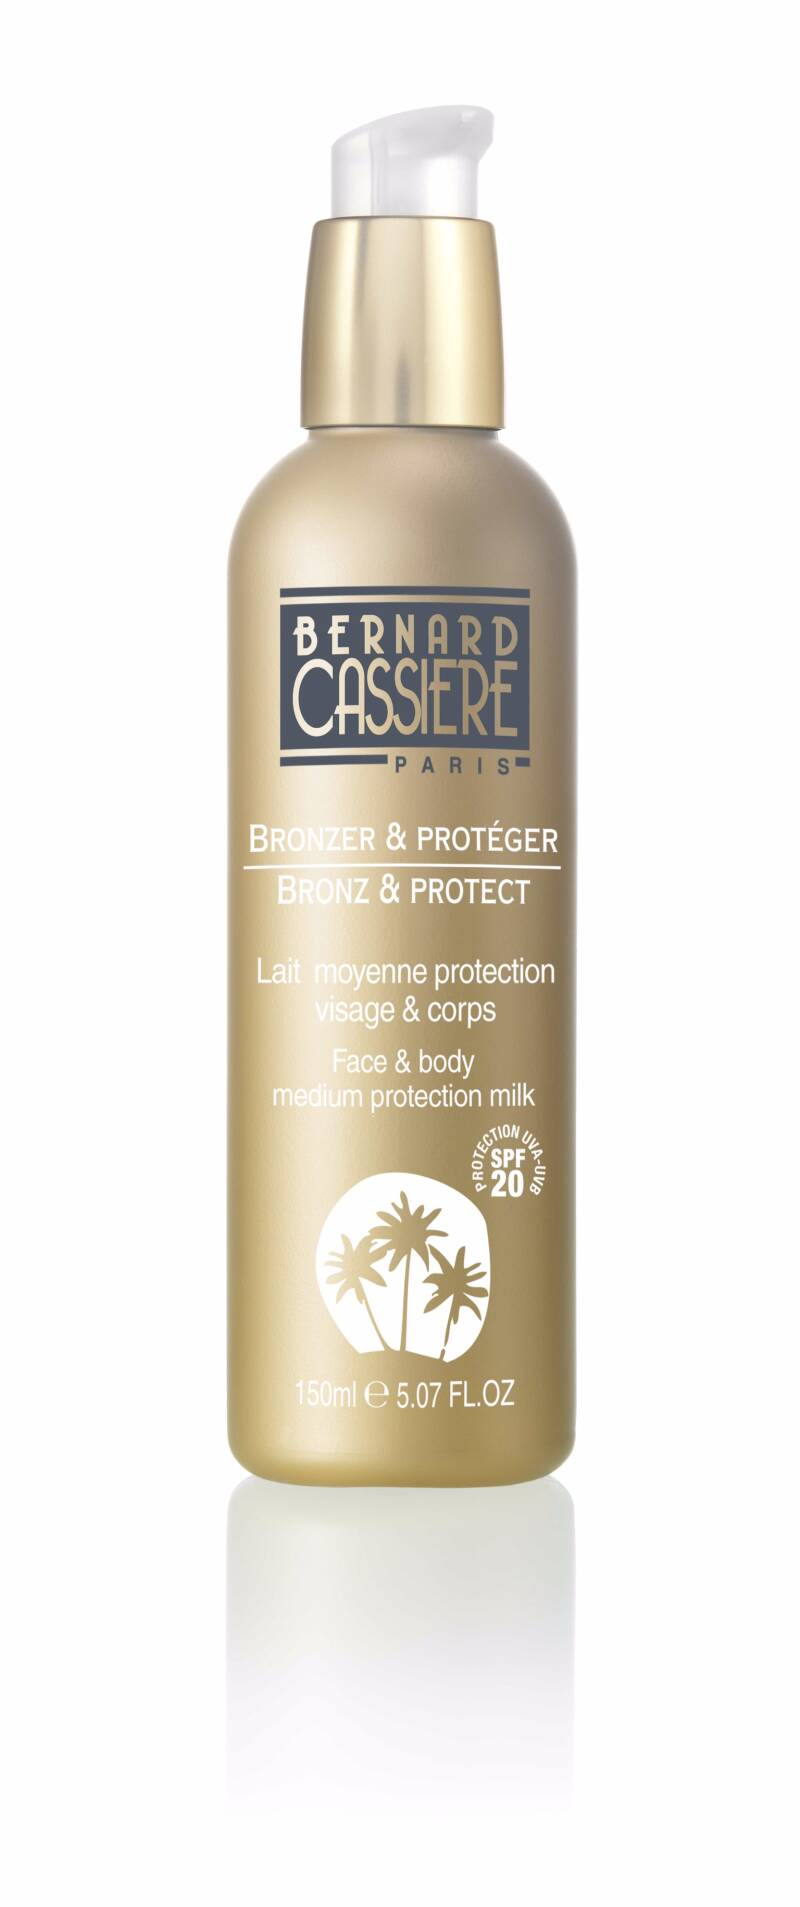 Lait moyenne protection visage & corps spf 20